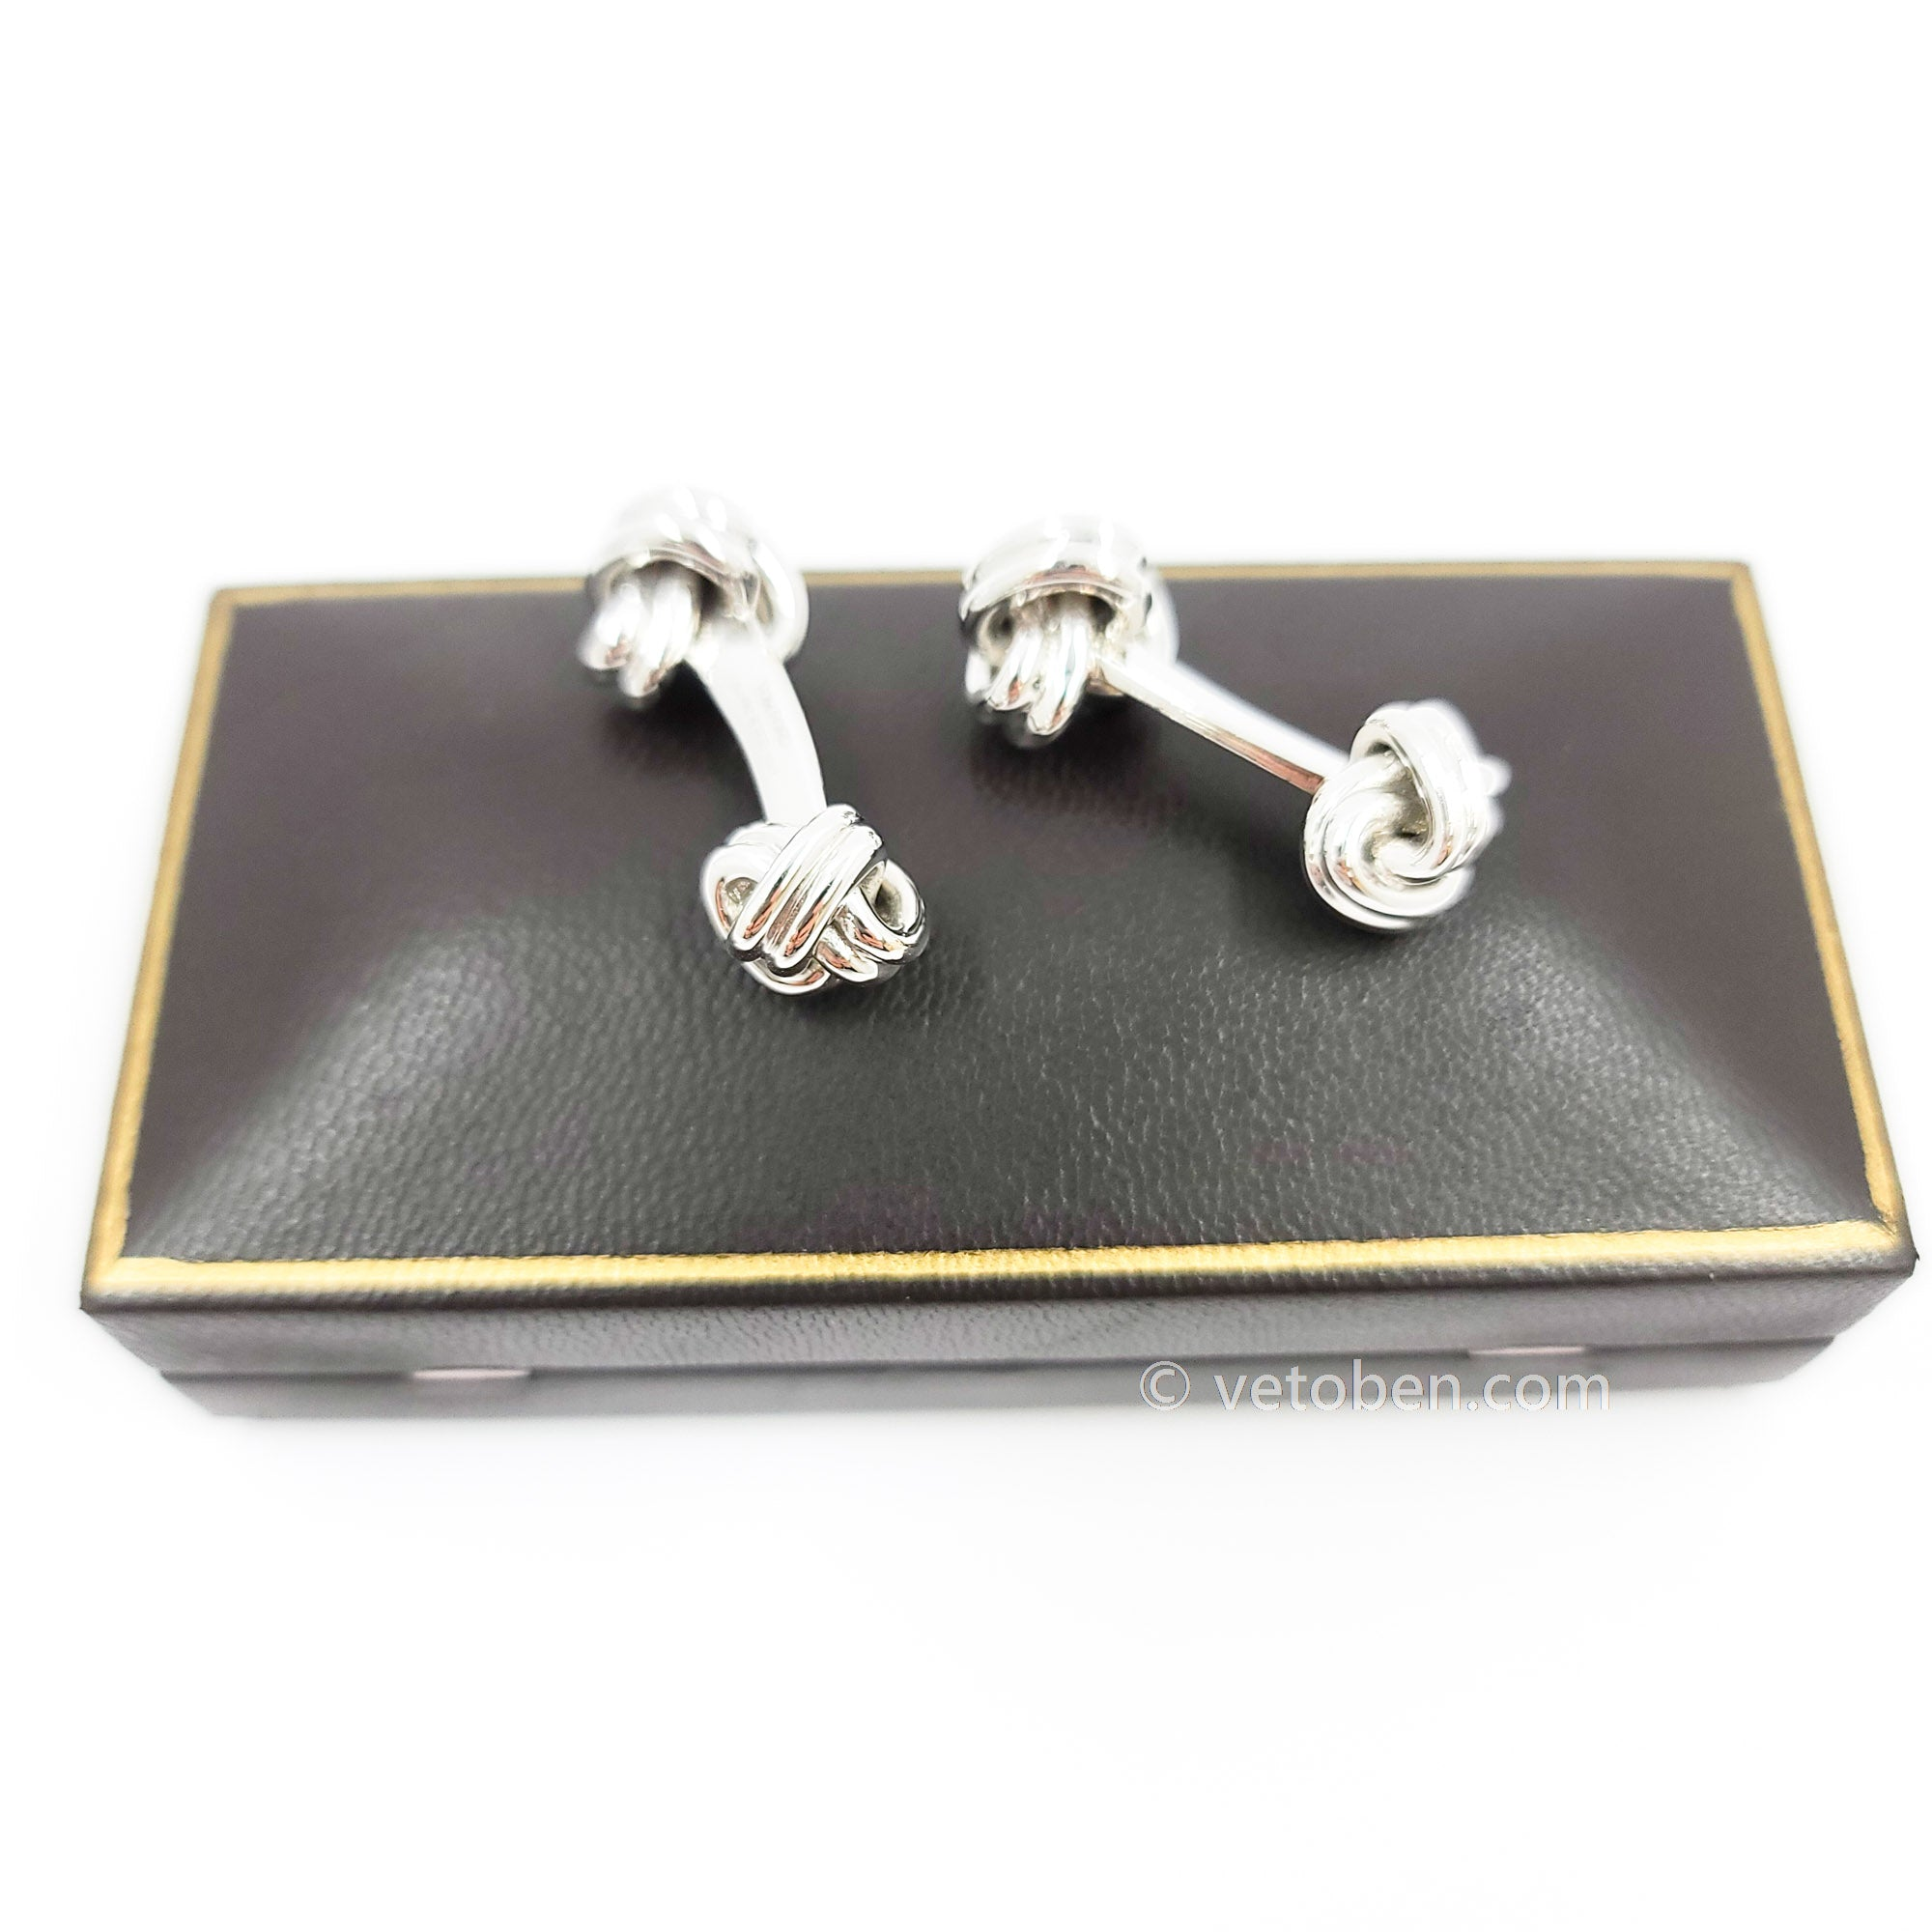 TOMFORD 18K WHITE GOLD CUFFLINKS